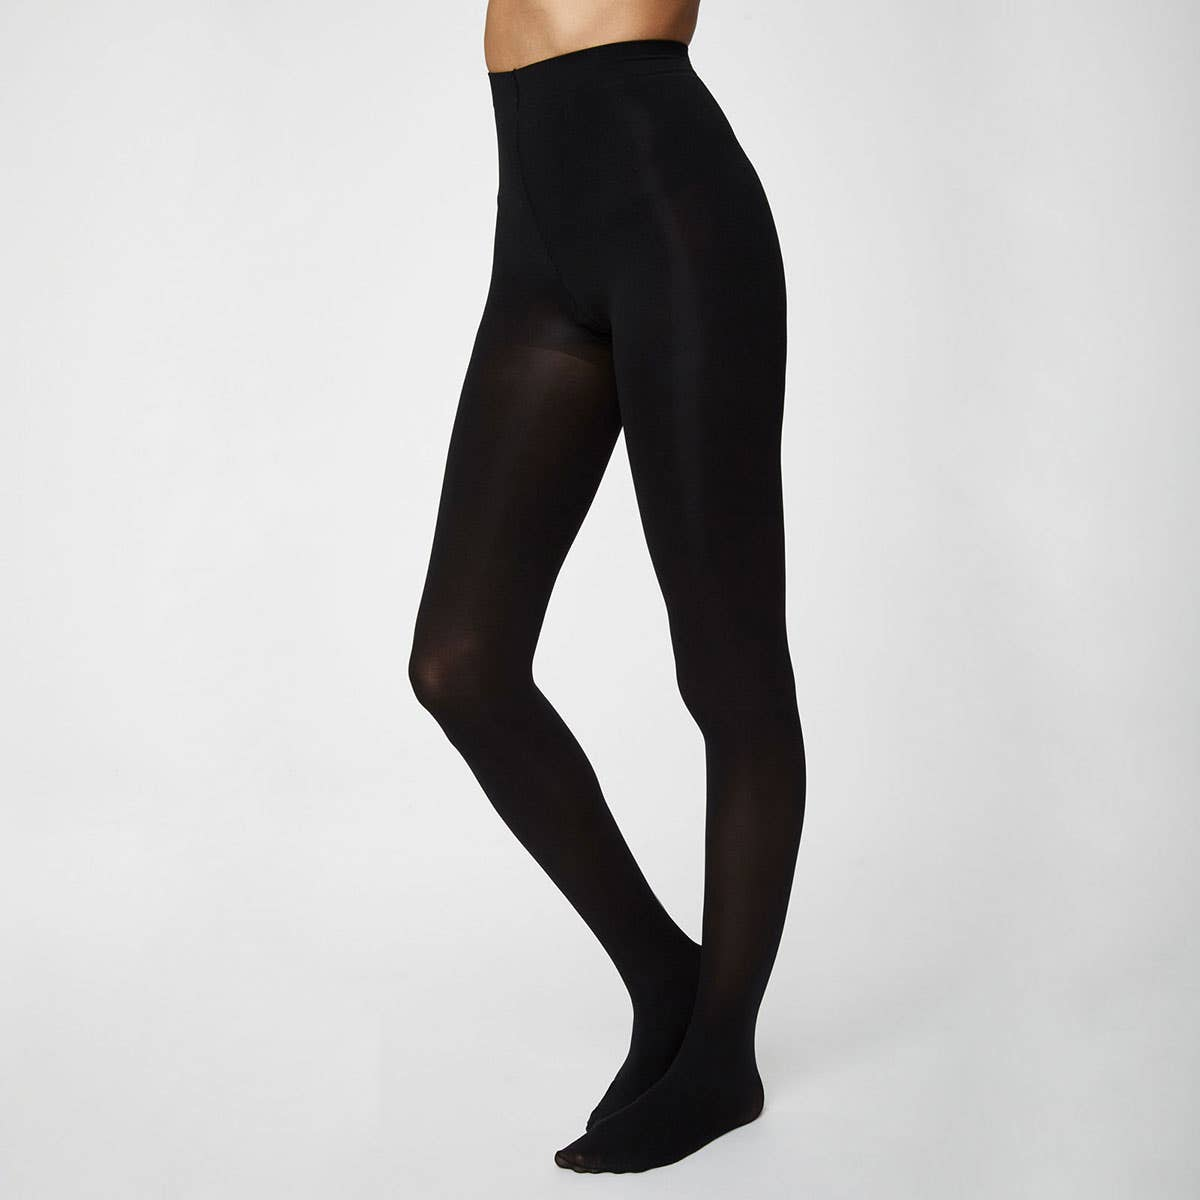 Thought Recycled Nylon Blend Black Sara Tights Small